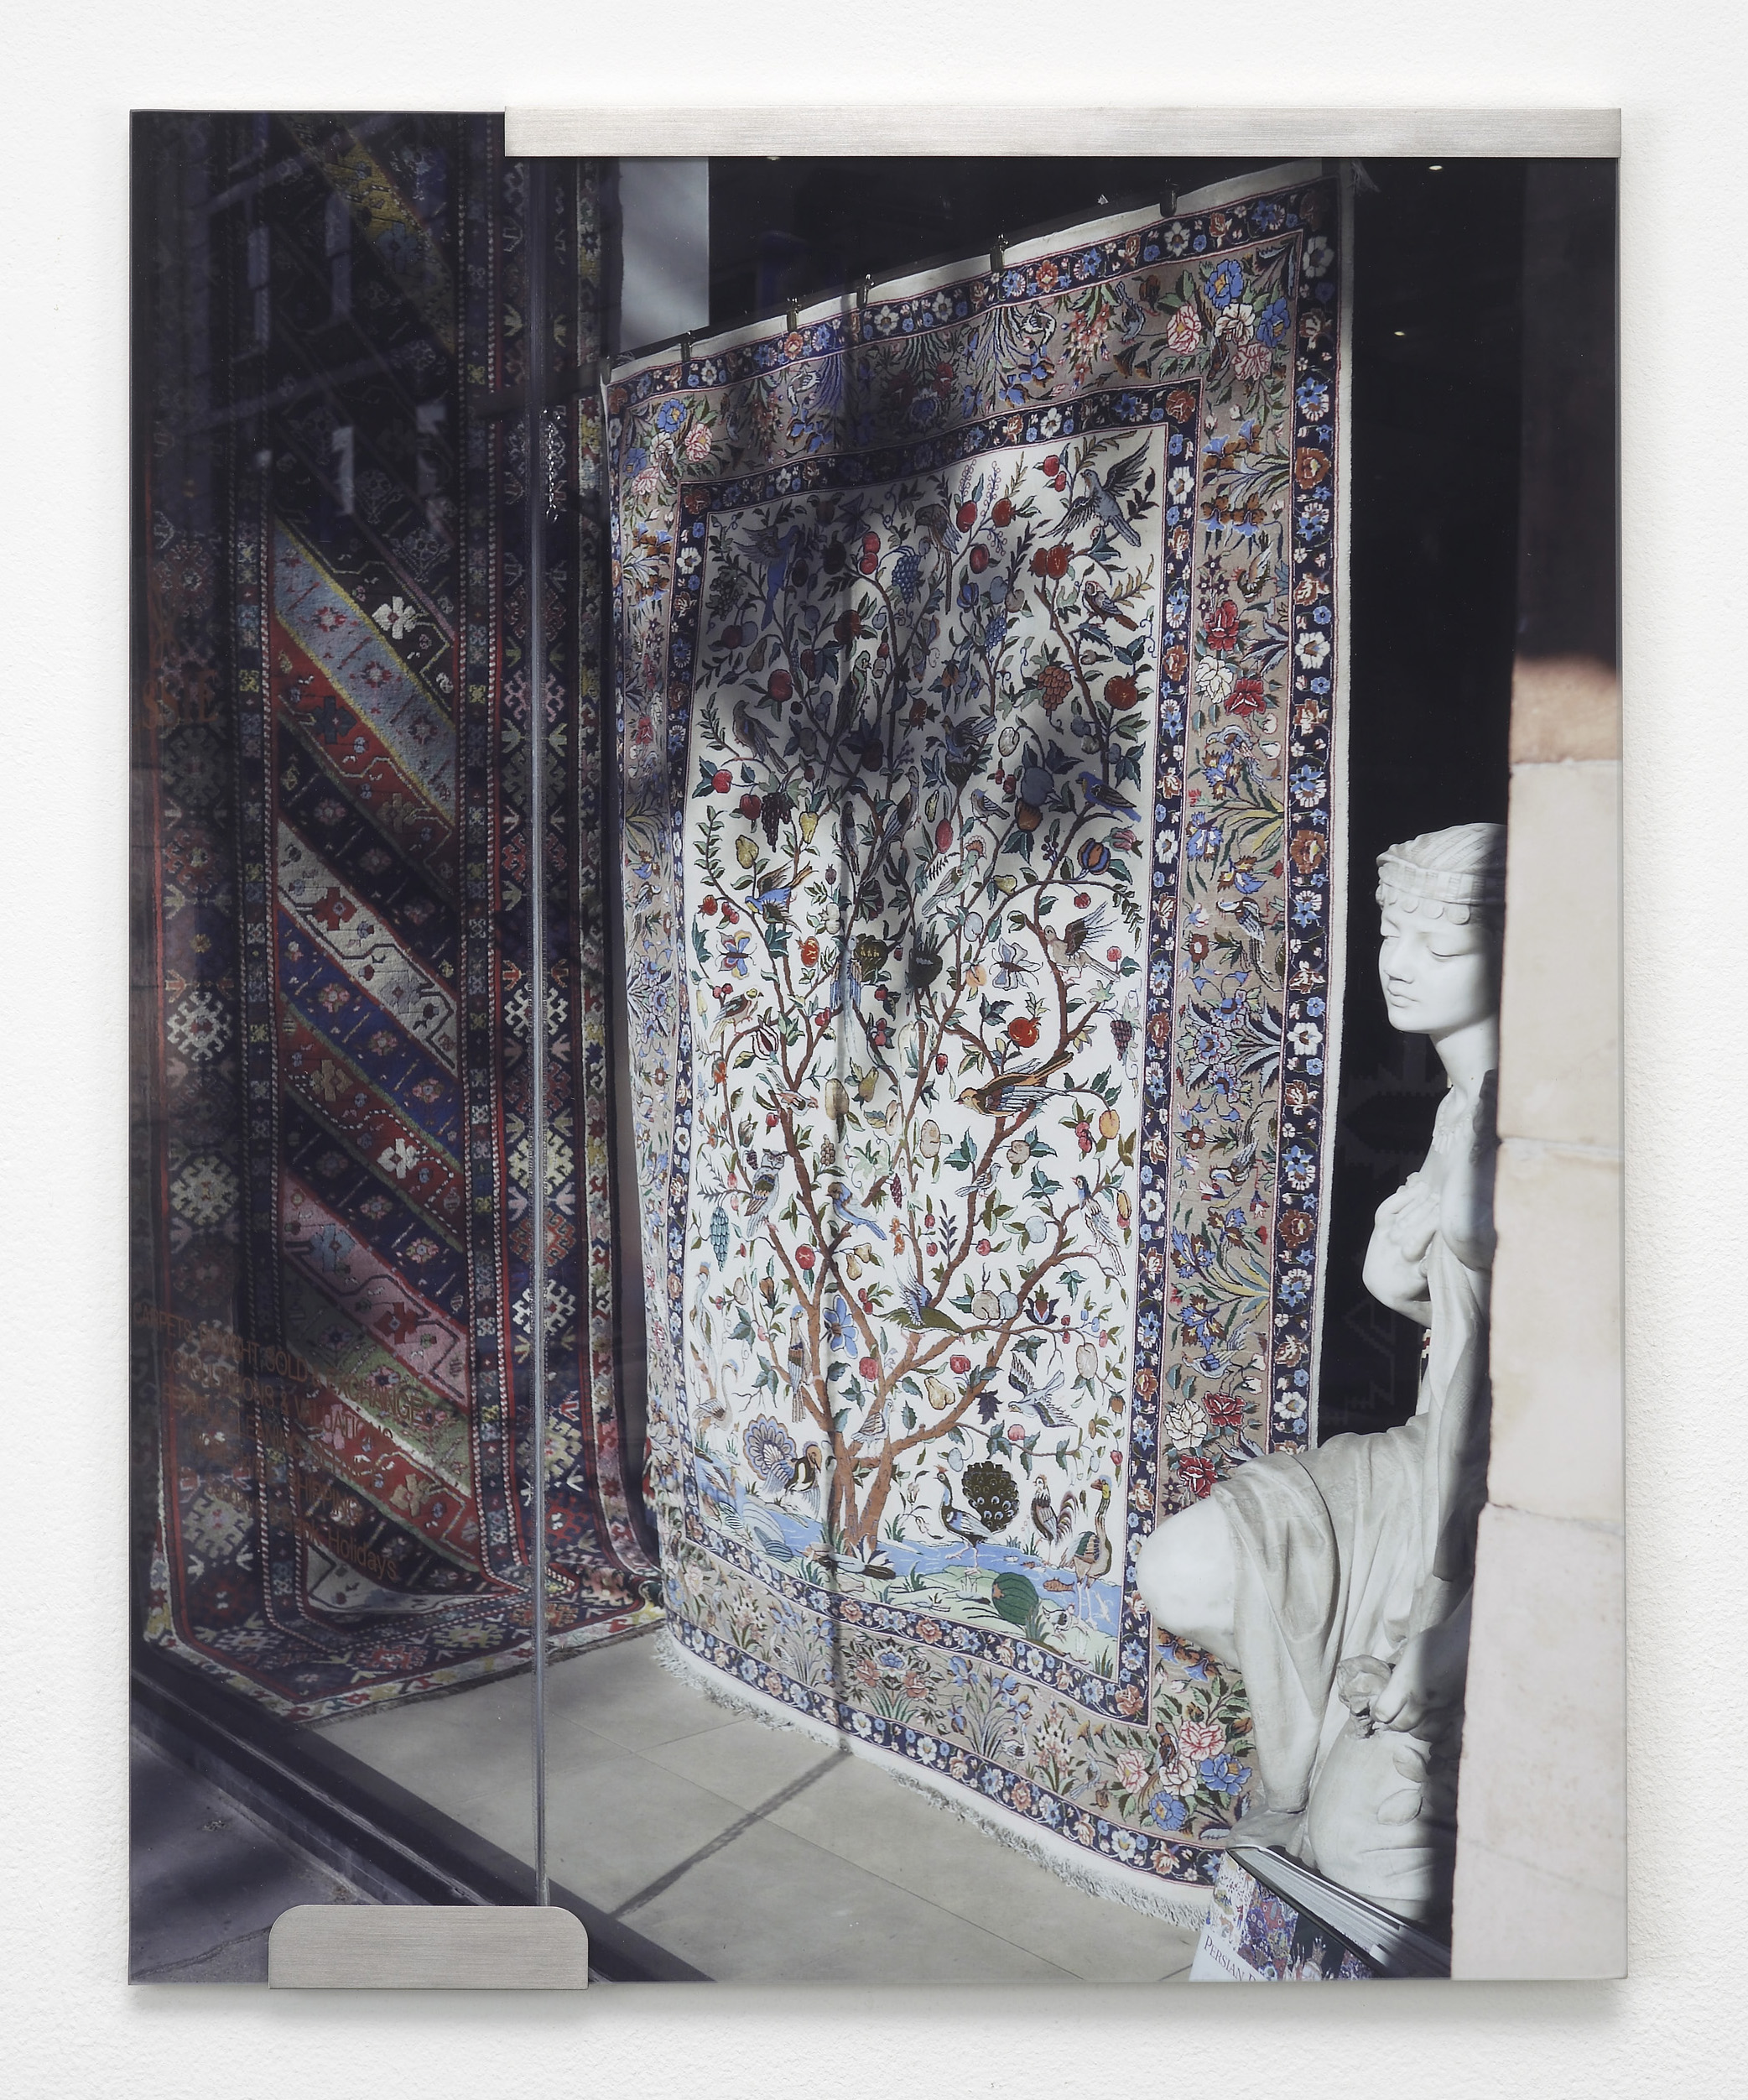 Nicole Wermers Carpets and Glass #2 2012 C-print, stainless steel clips, clip frame 50 x 40 cm